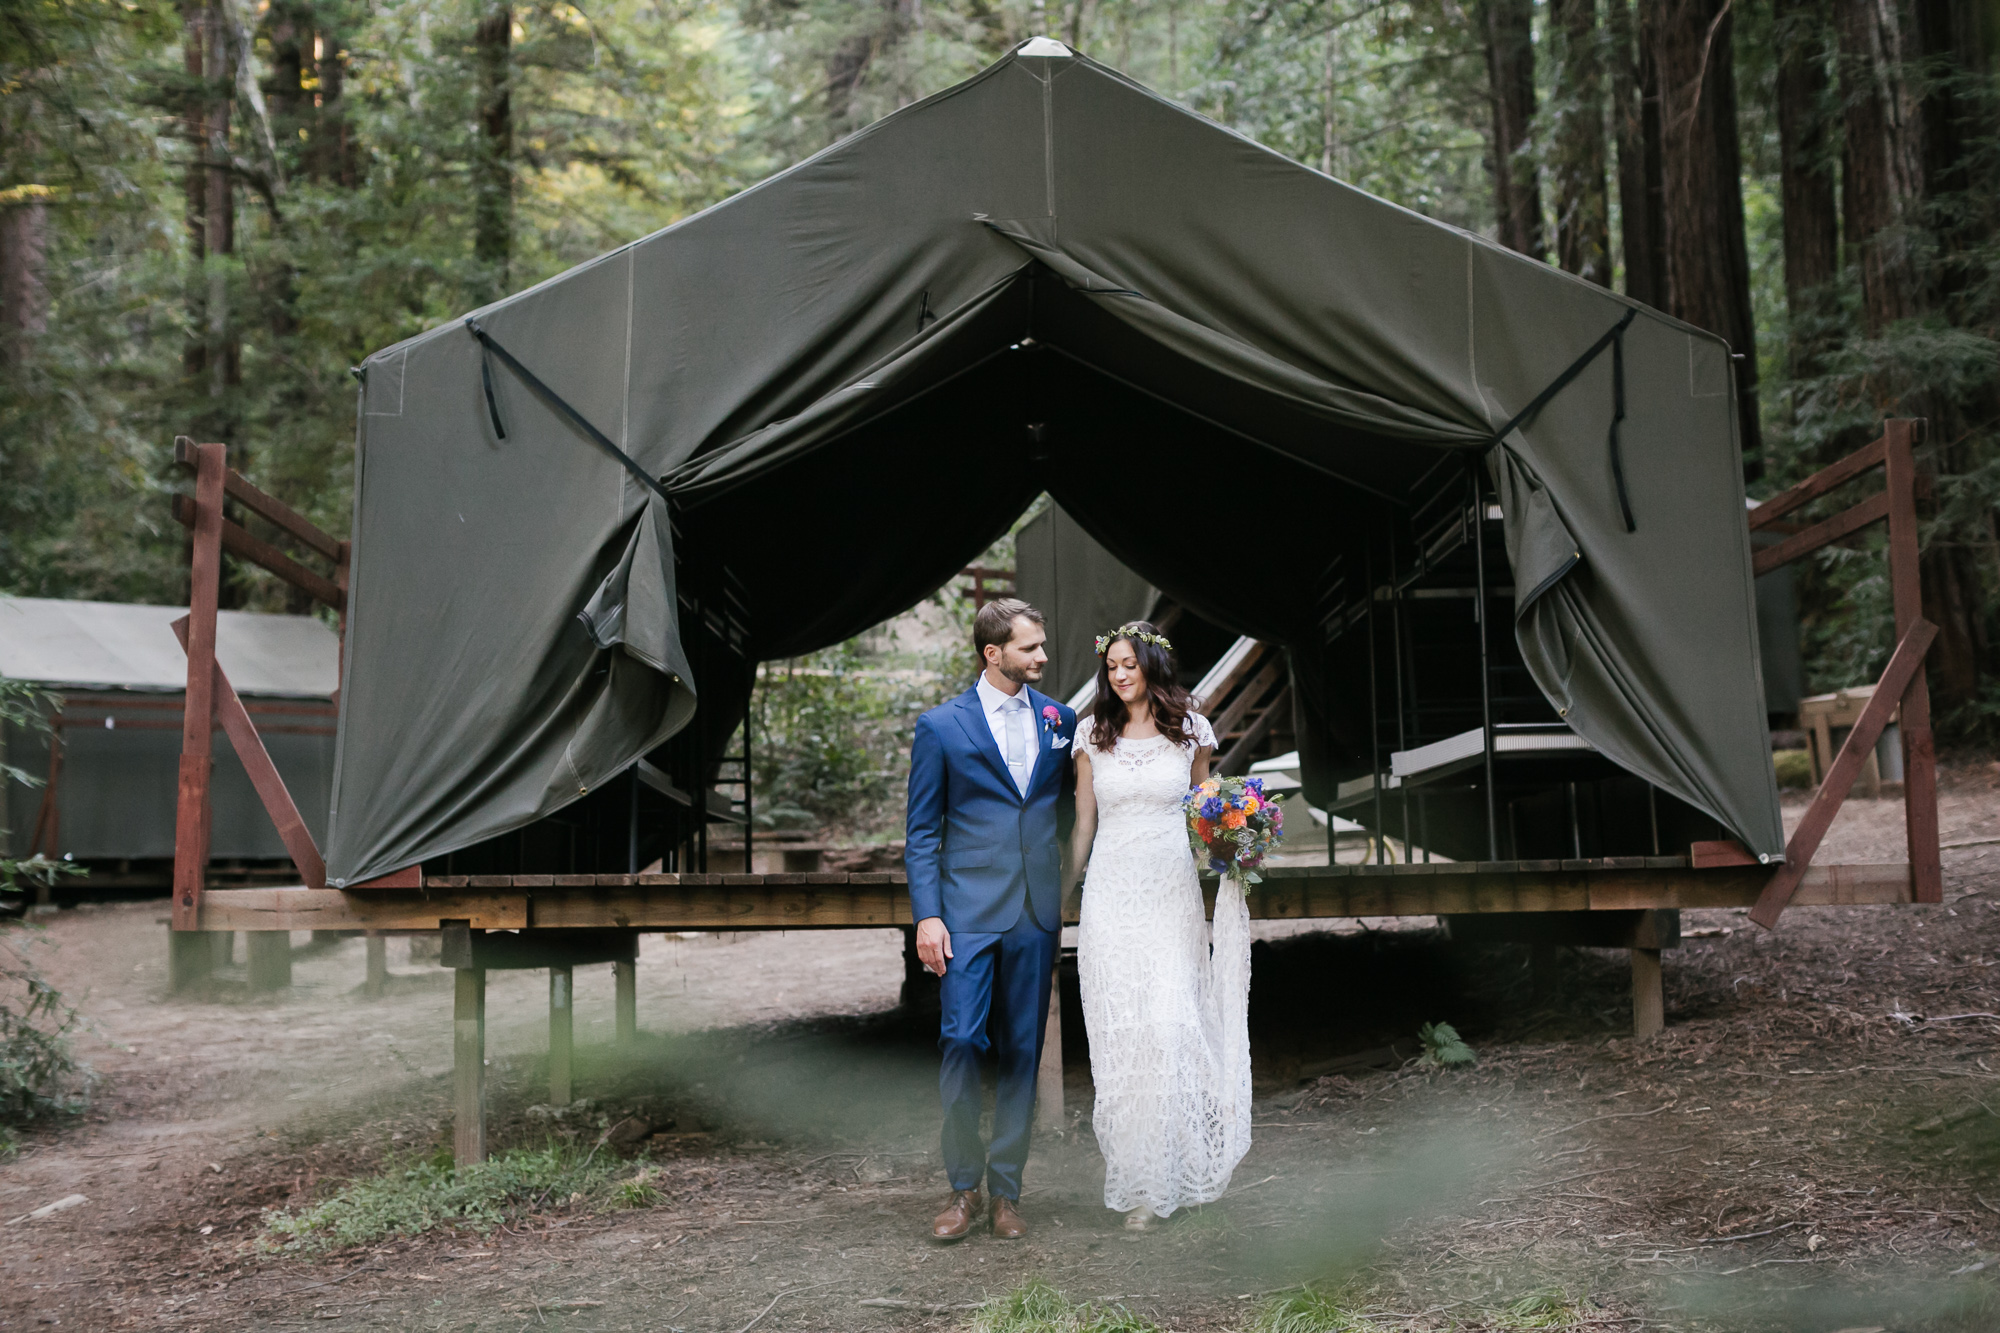 Bright wedding couple stand in front of green canvas tent cabin